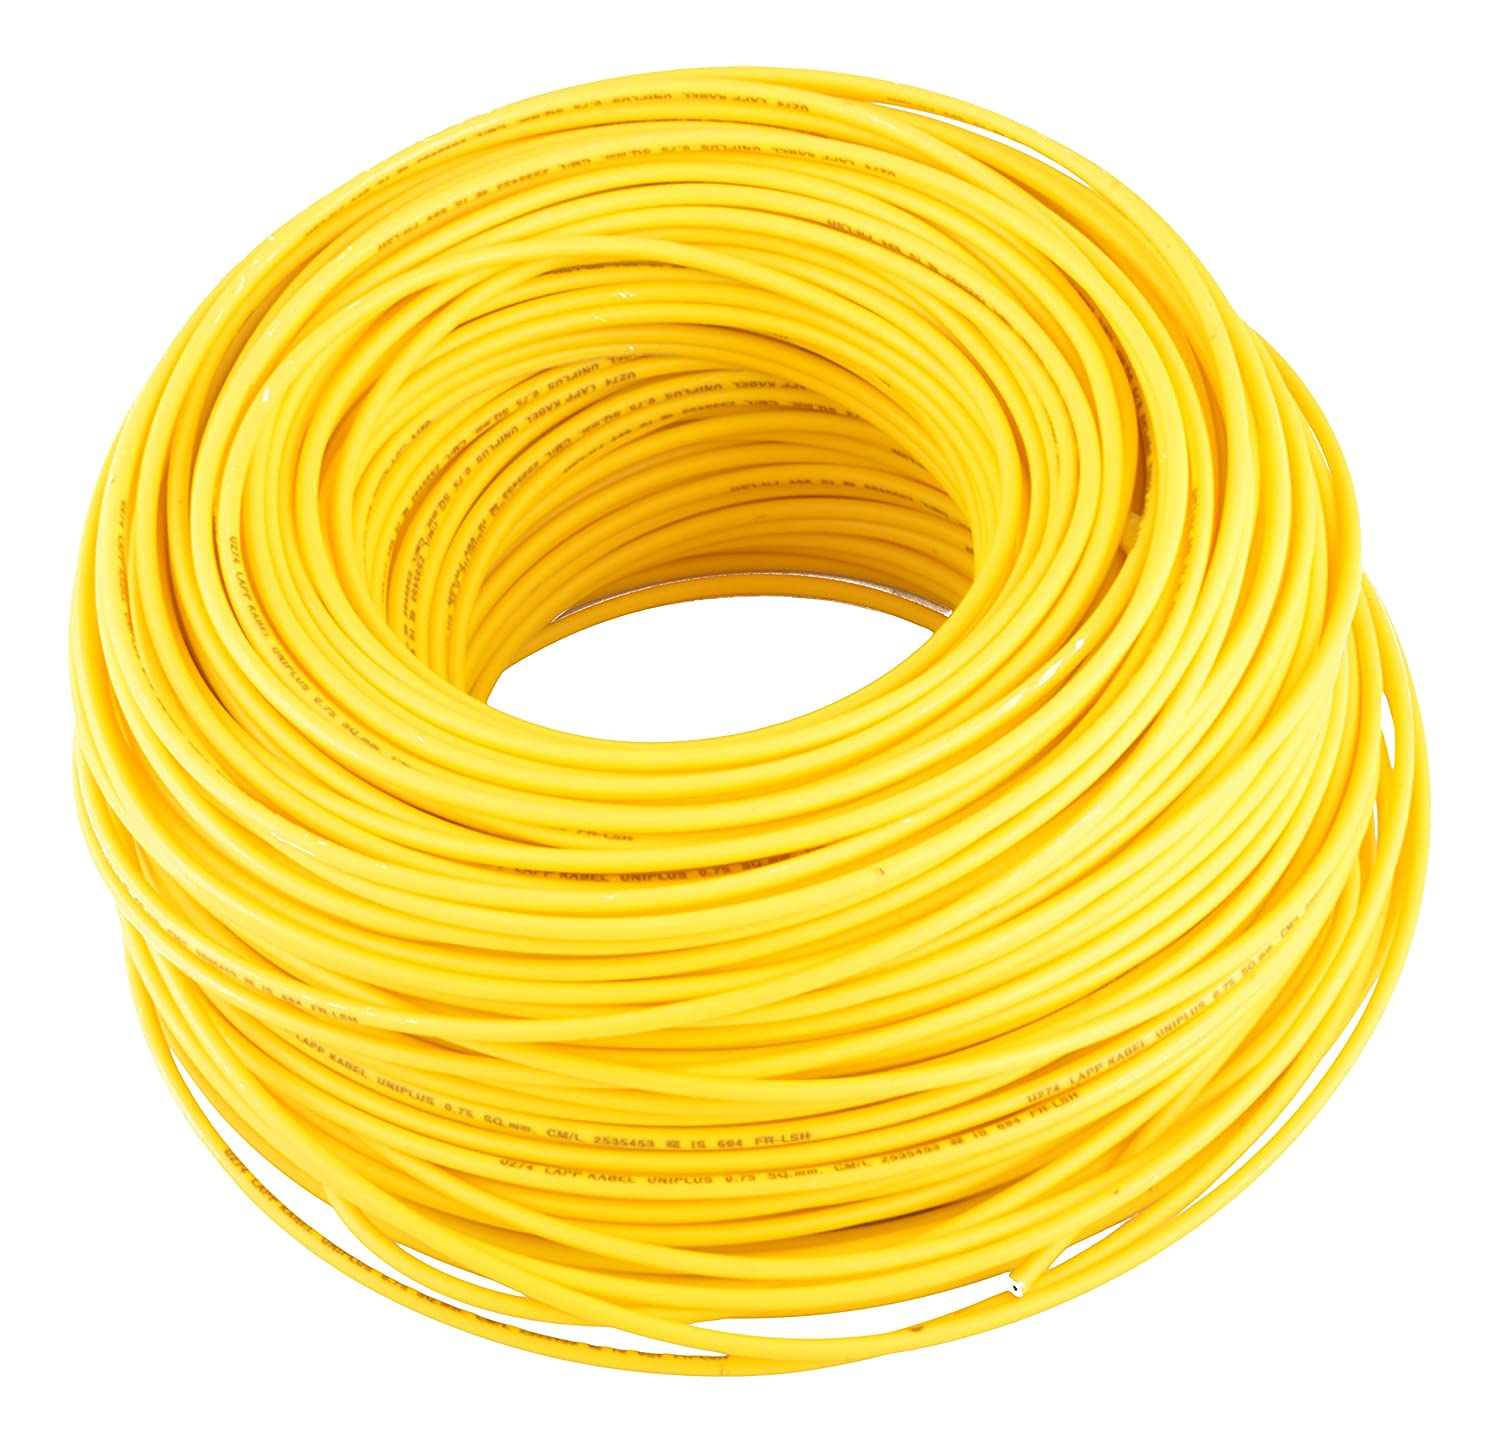 Cable buy electric cable 2 5 sq mm cable 1 5 sqmm wire product on - Lapp Kabel 1 5 Sq Mm Electrical Cable Yellow 1 Piece Amazon In Home Improvement